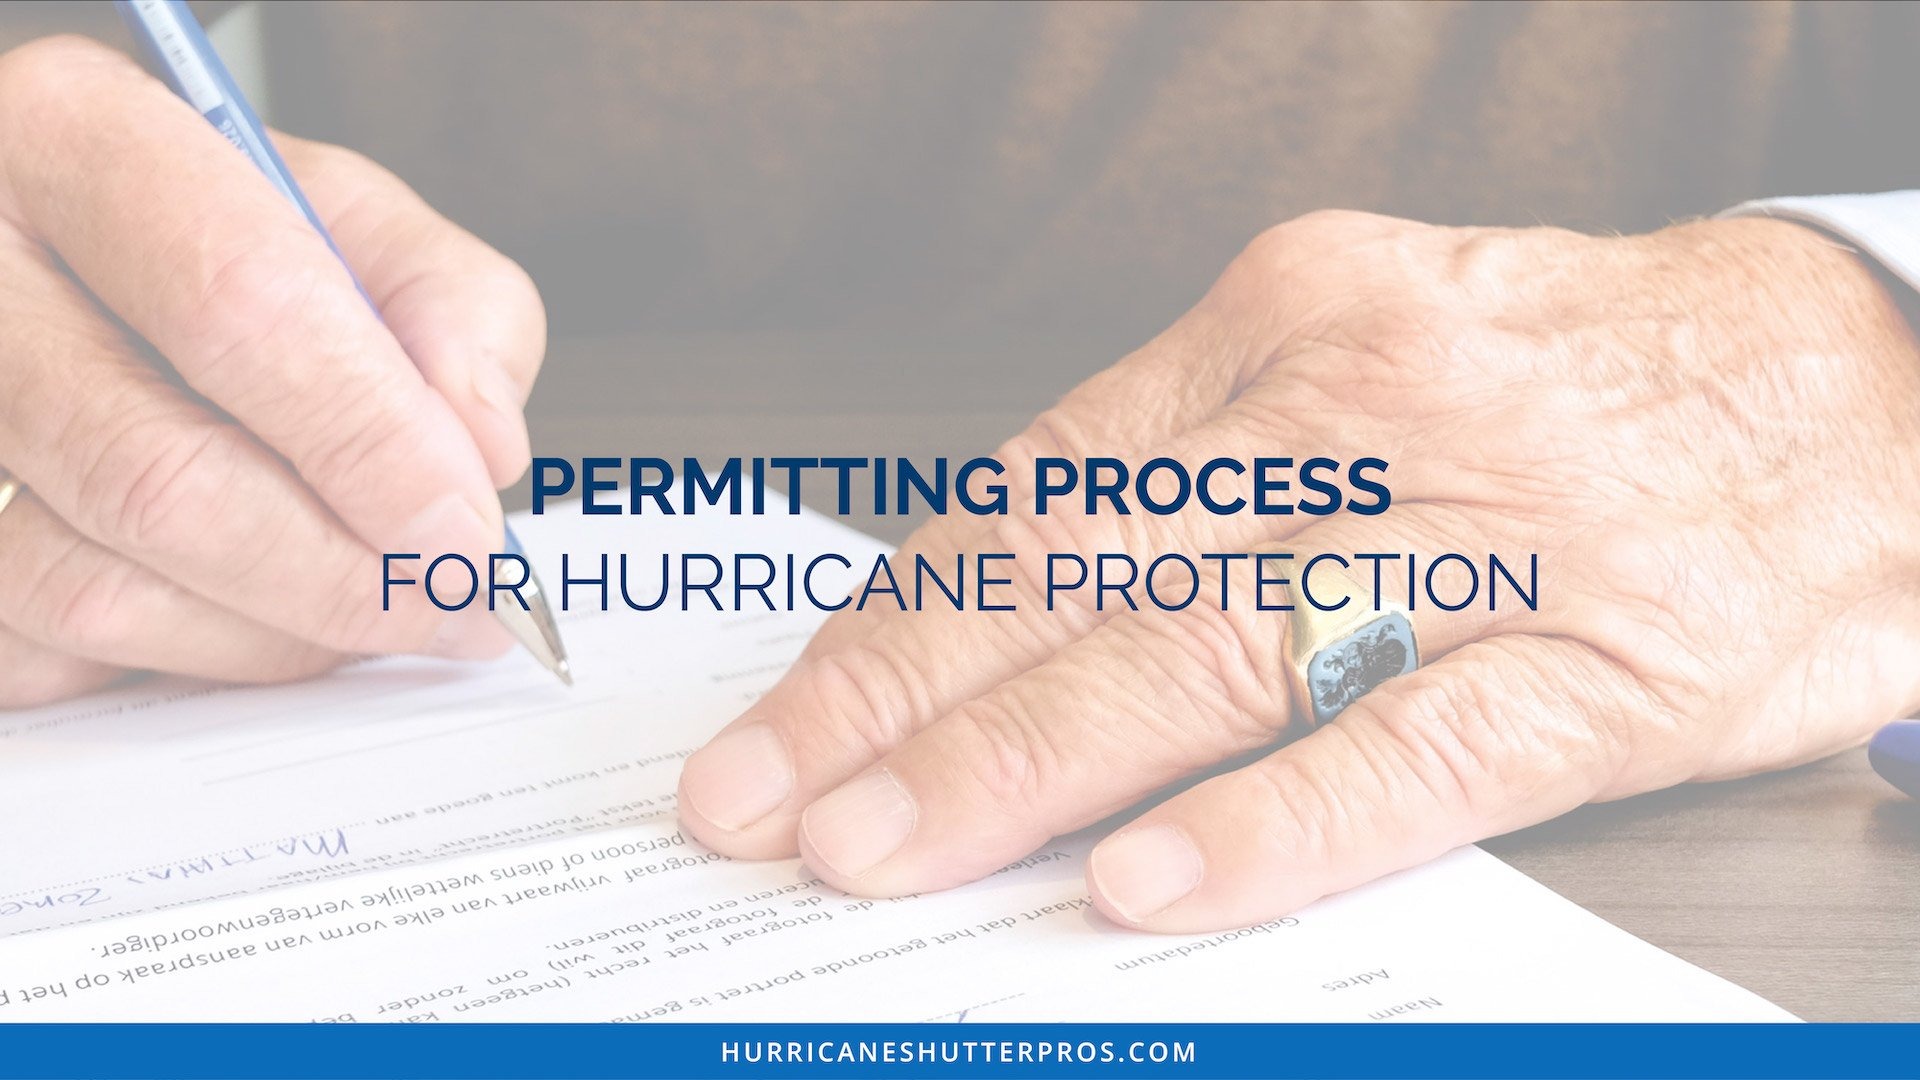 Permitting Process for Hurricane Protection